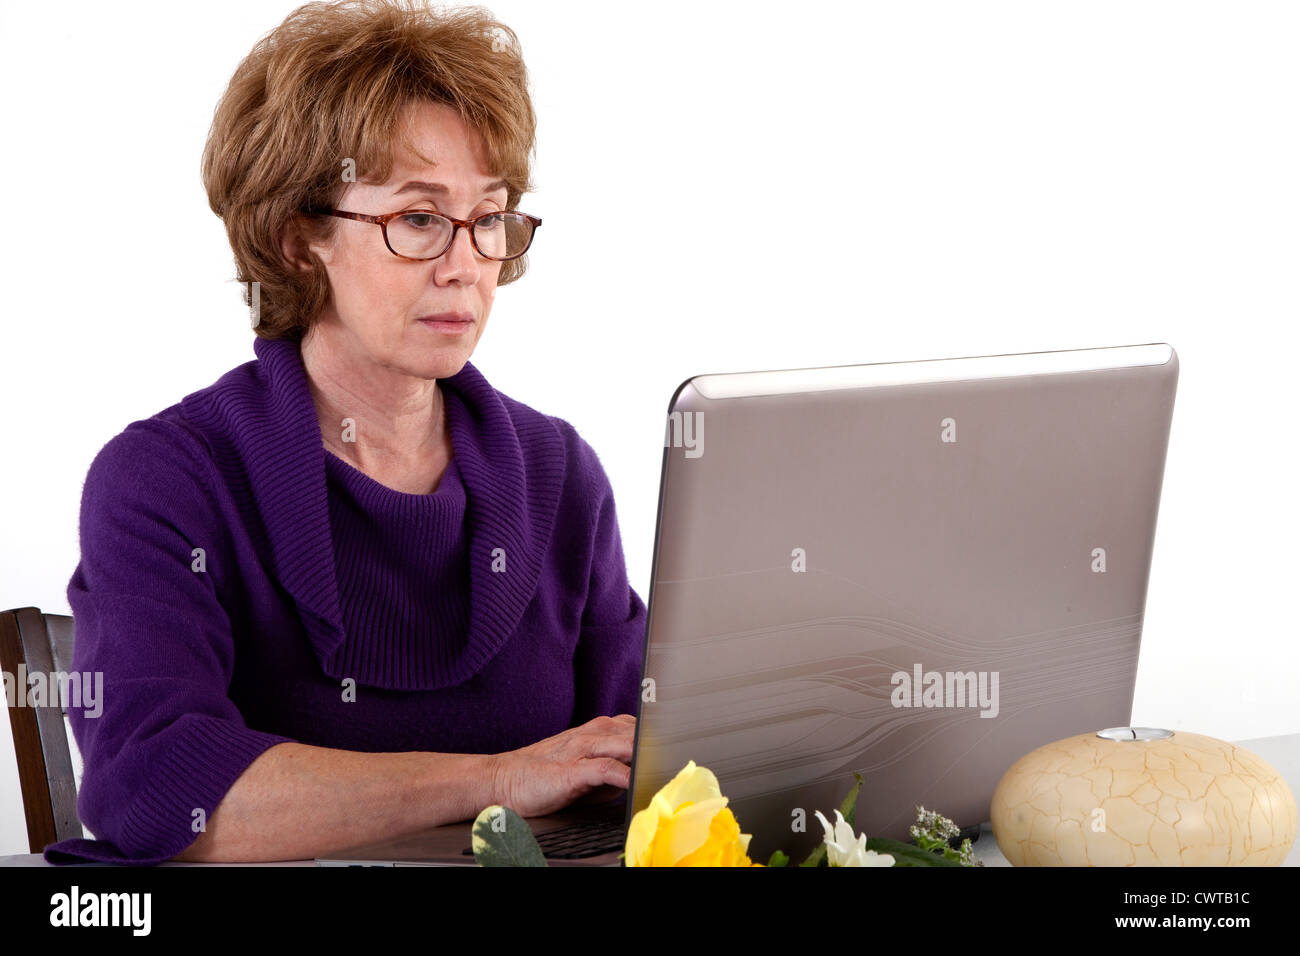 A mature woman who appears to be engrossed in whatever she sees on the screen of her laptop computer. Stock Photo